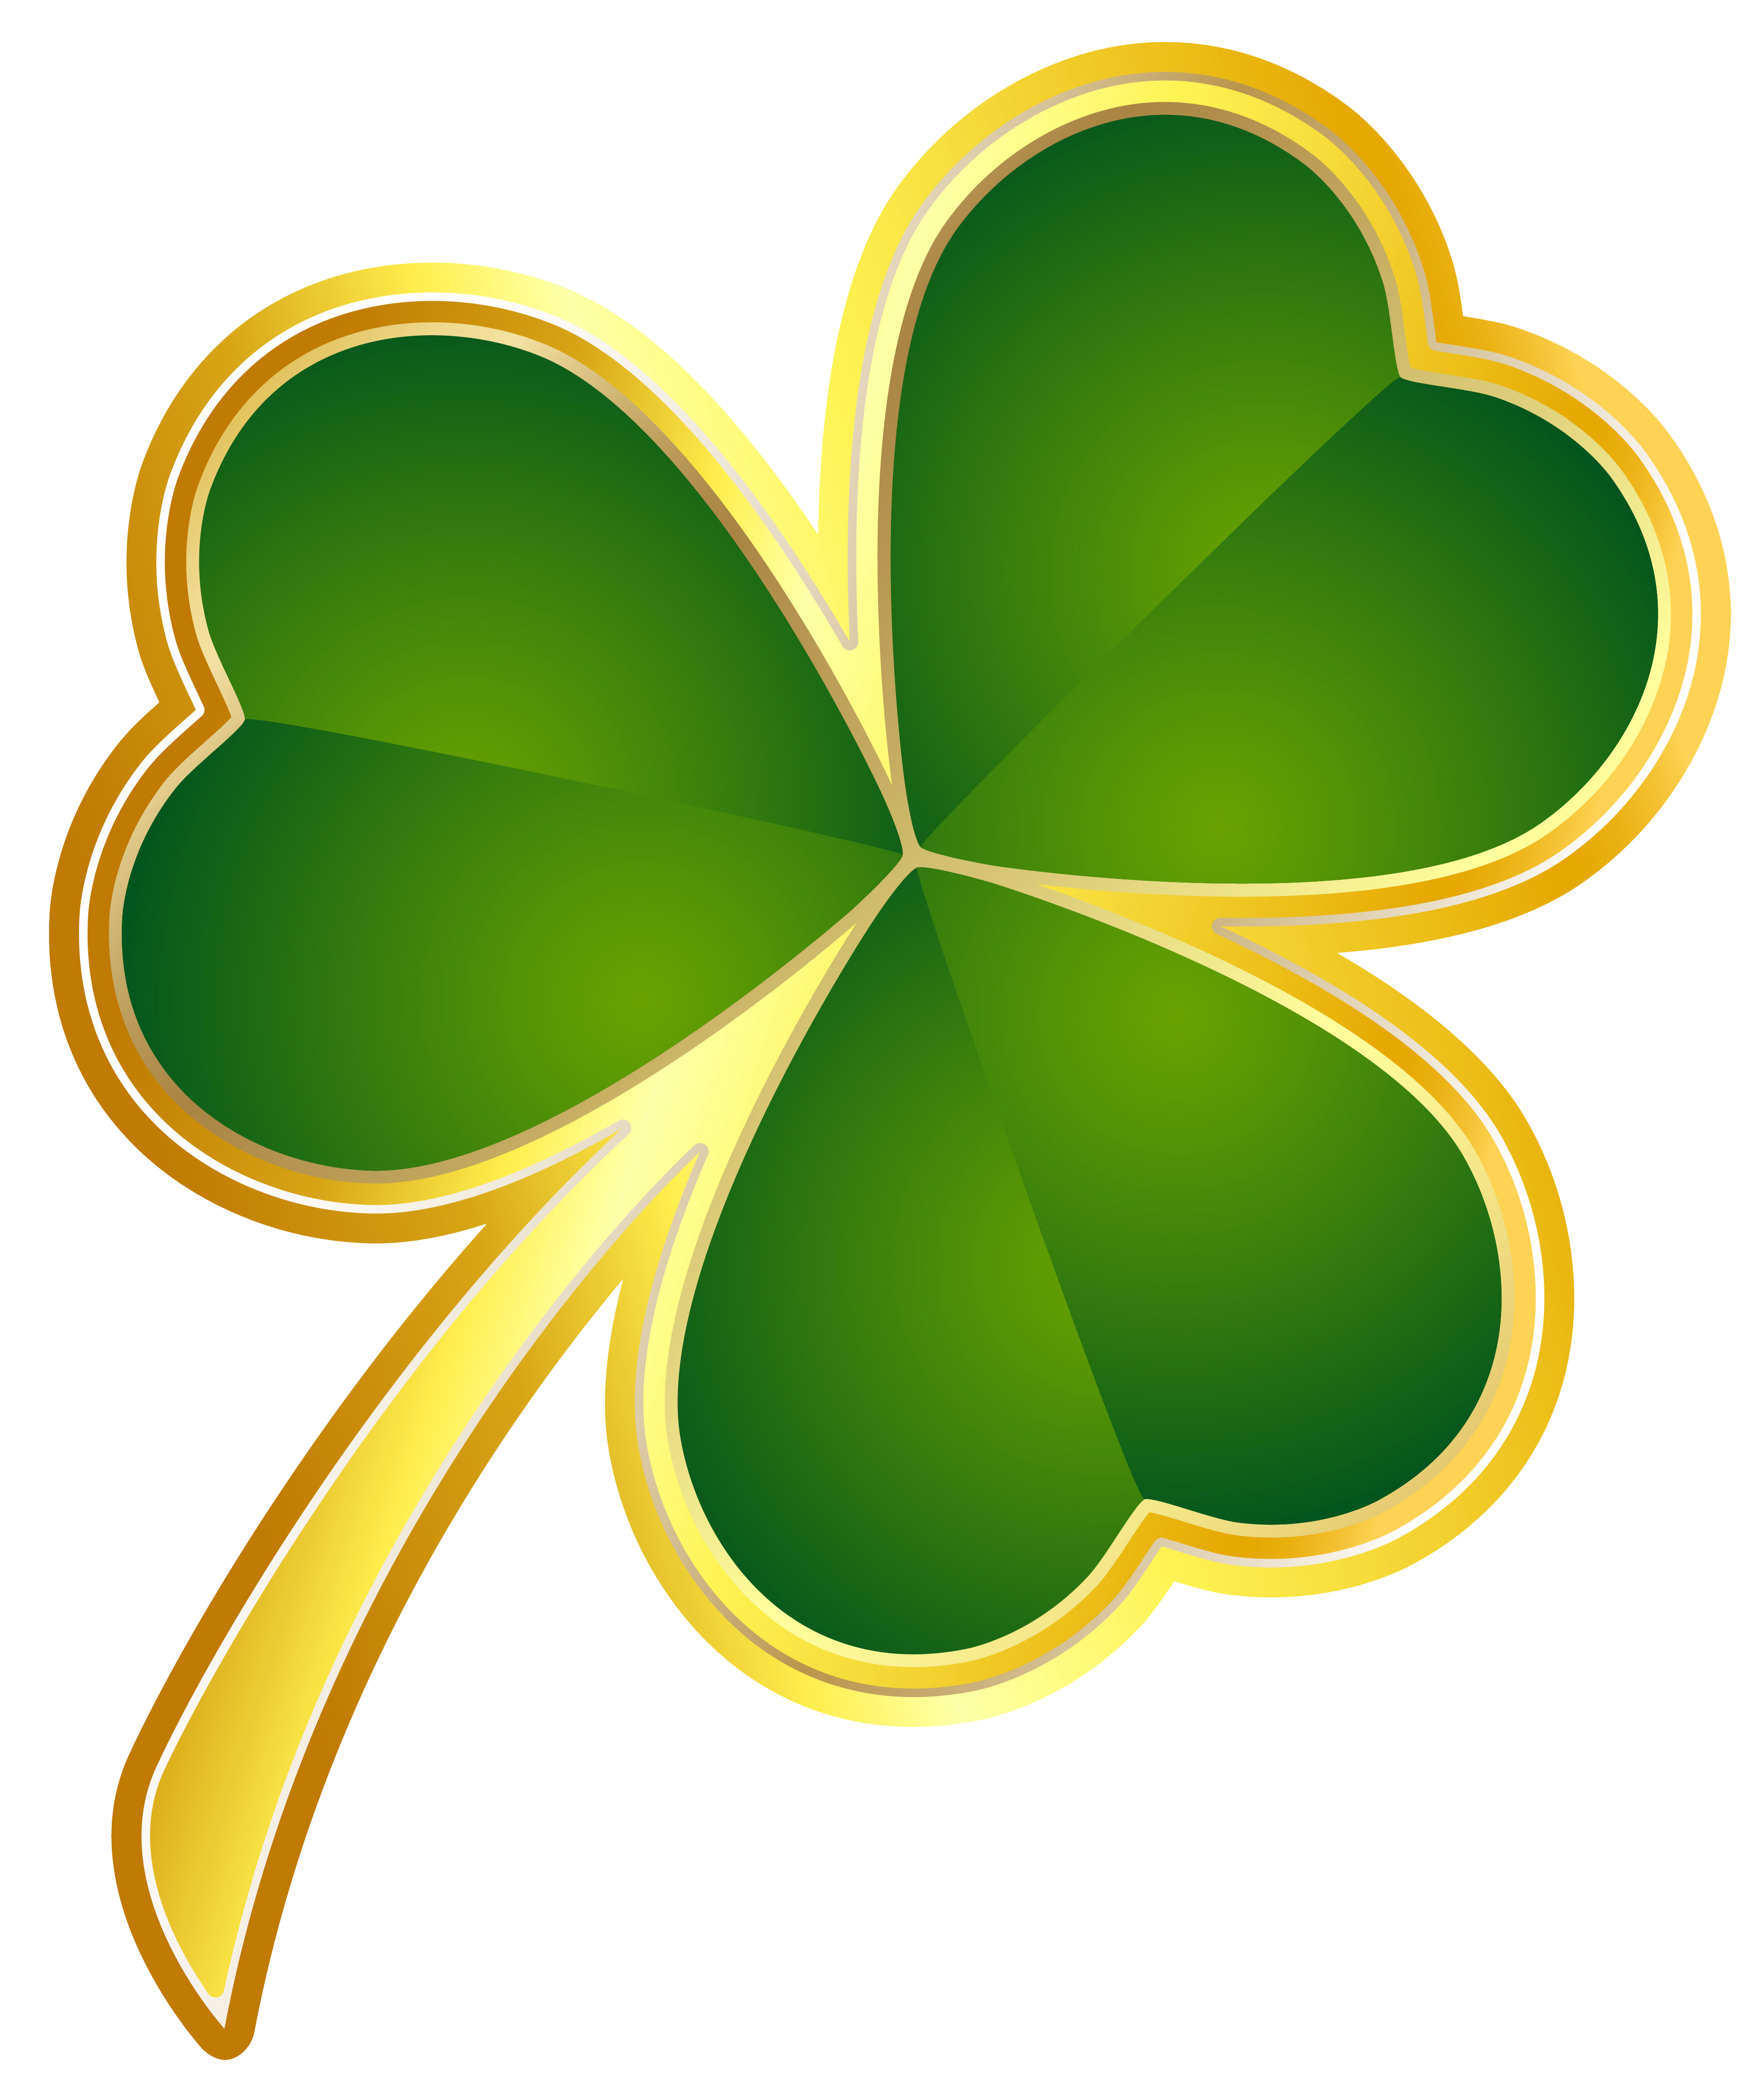 3876x4623 St Patricks Day Gold Shamrock Png Clipartu200b Gallery Yopriceville